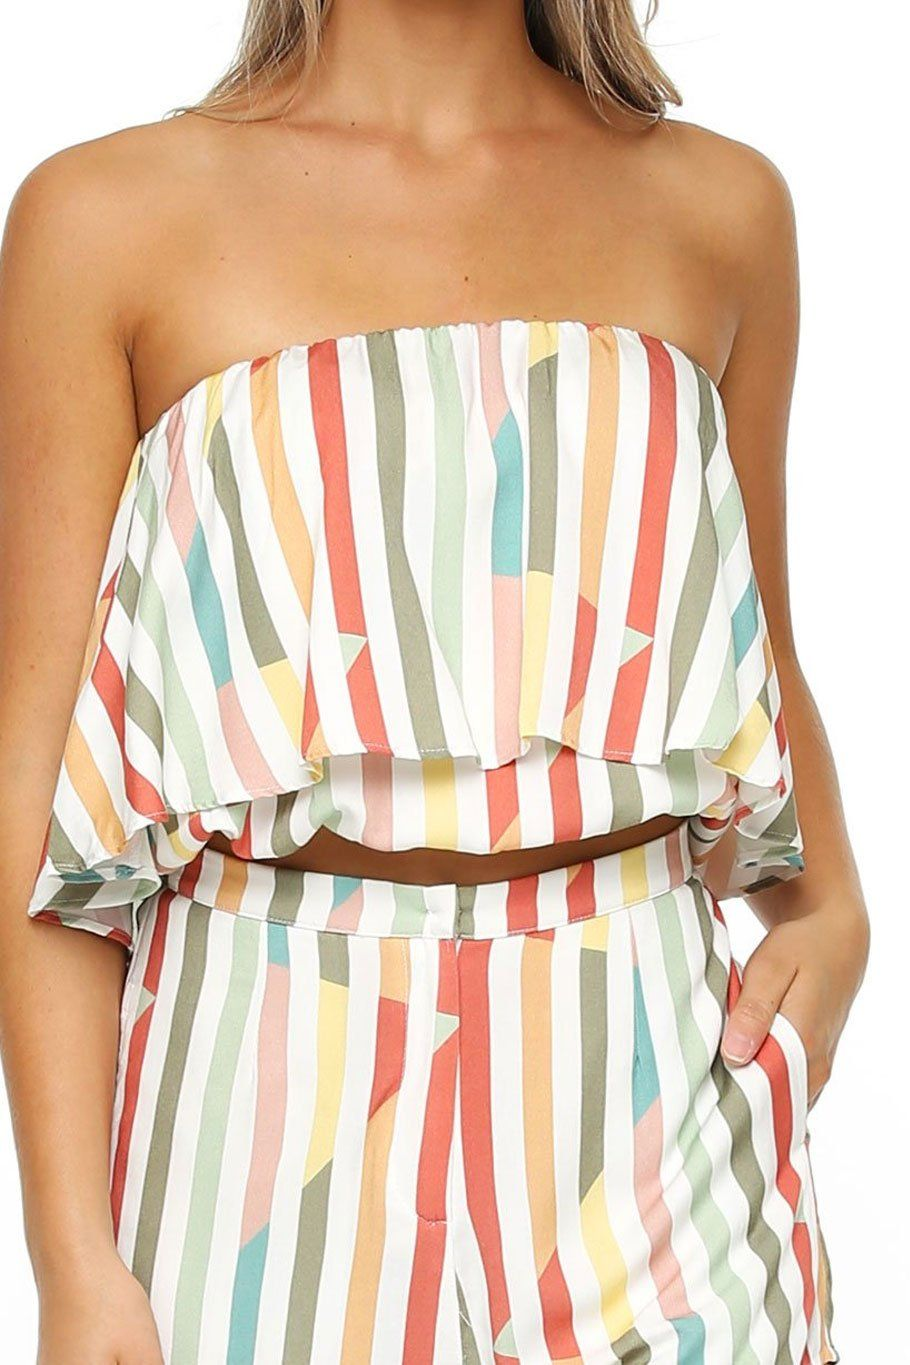 Huntington Layered Top - Multi Stripe